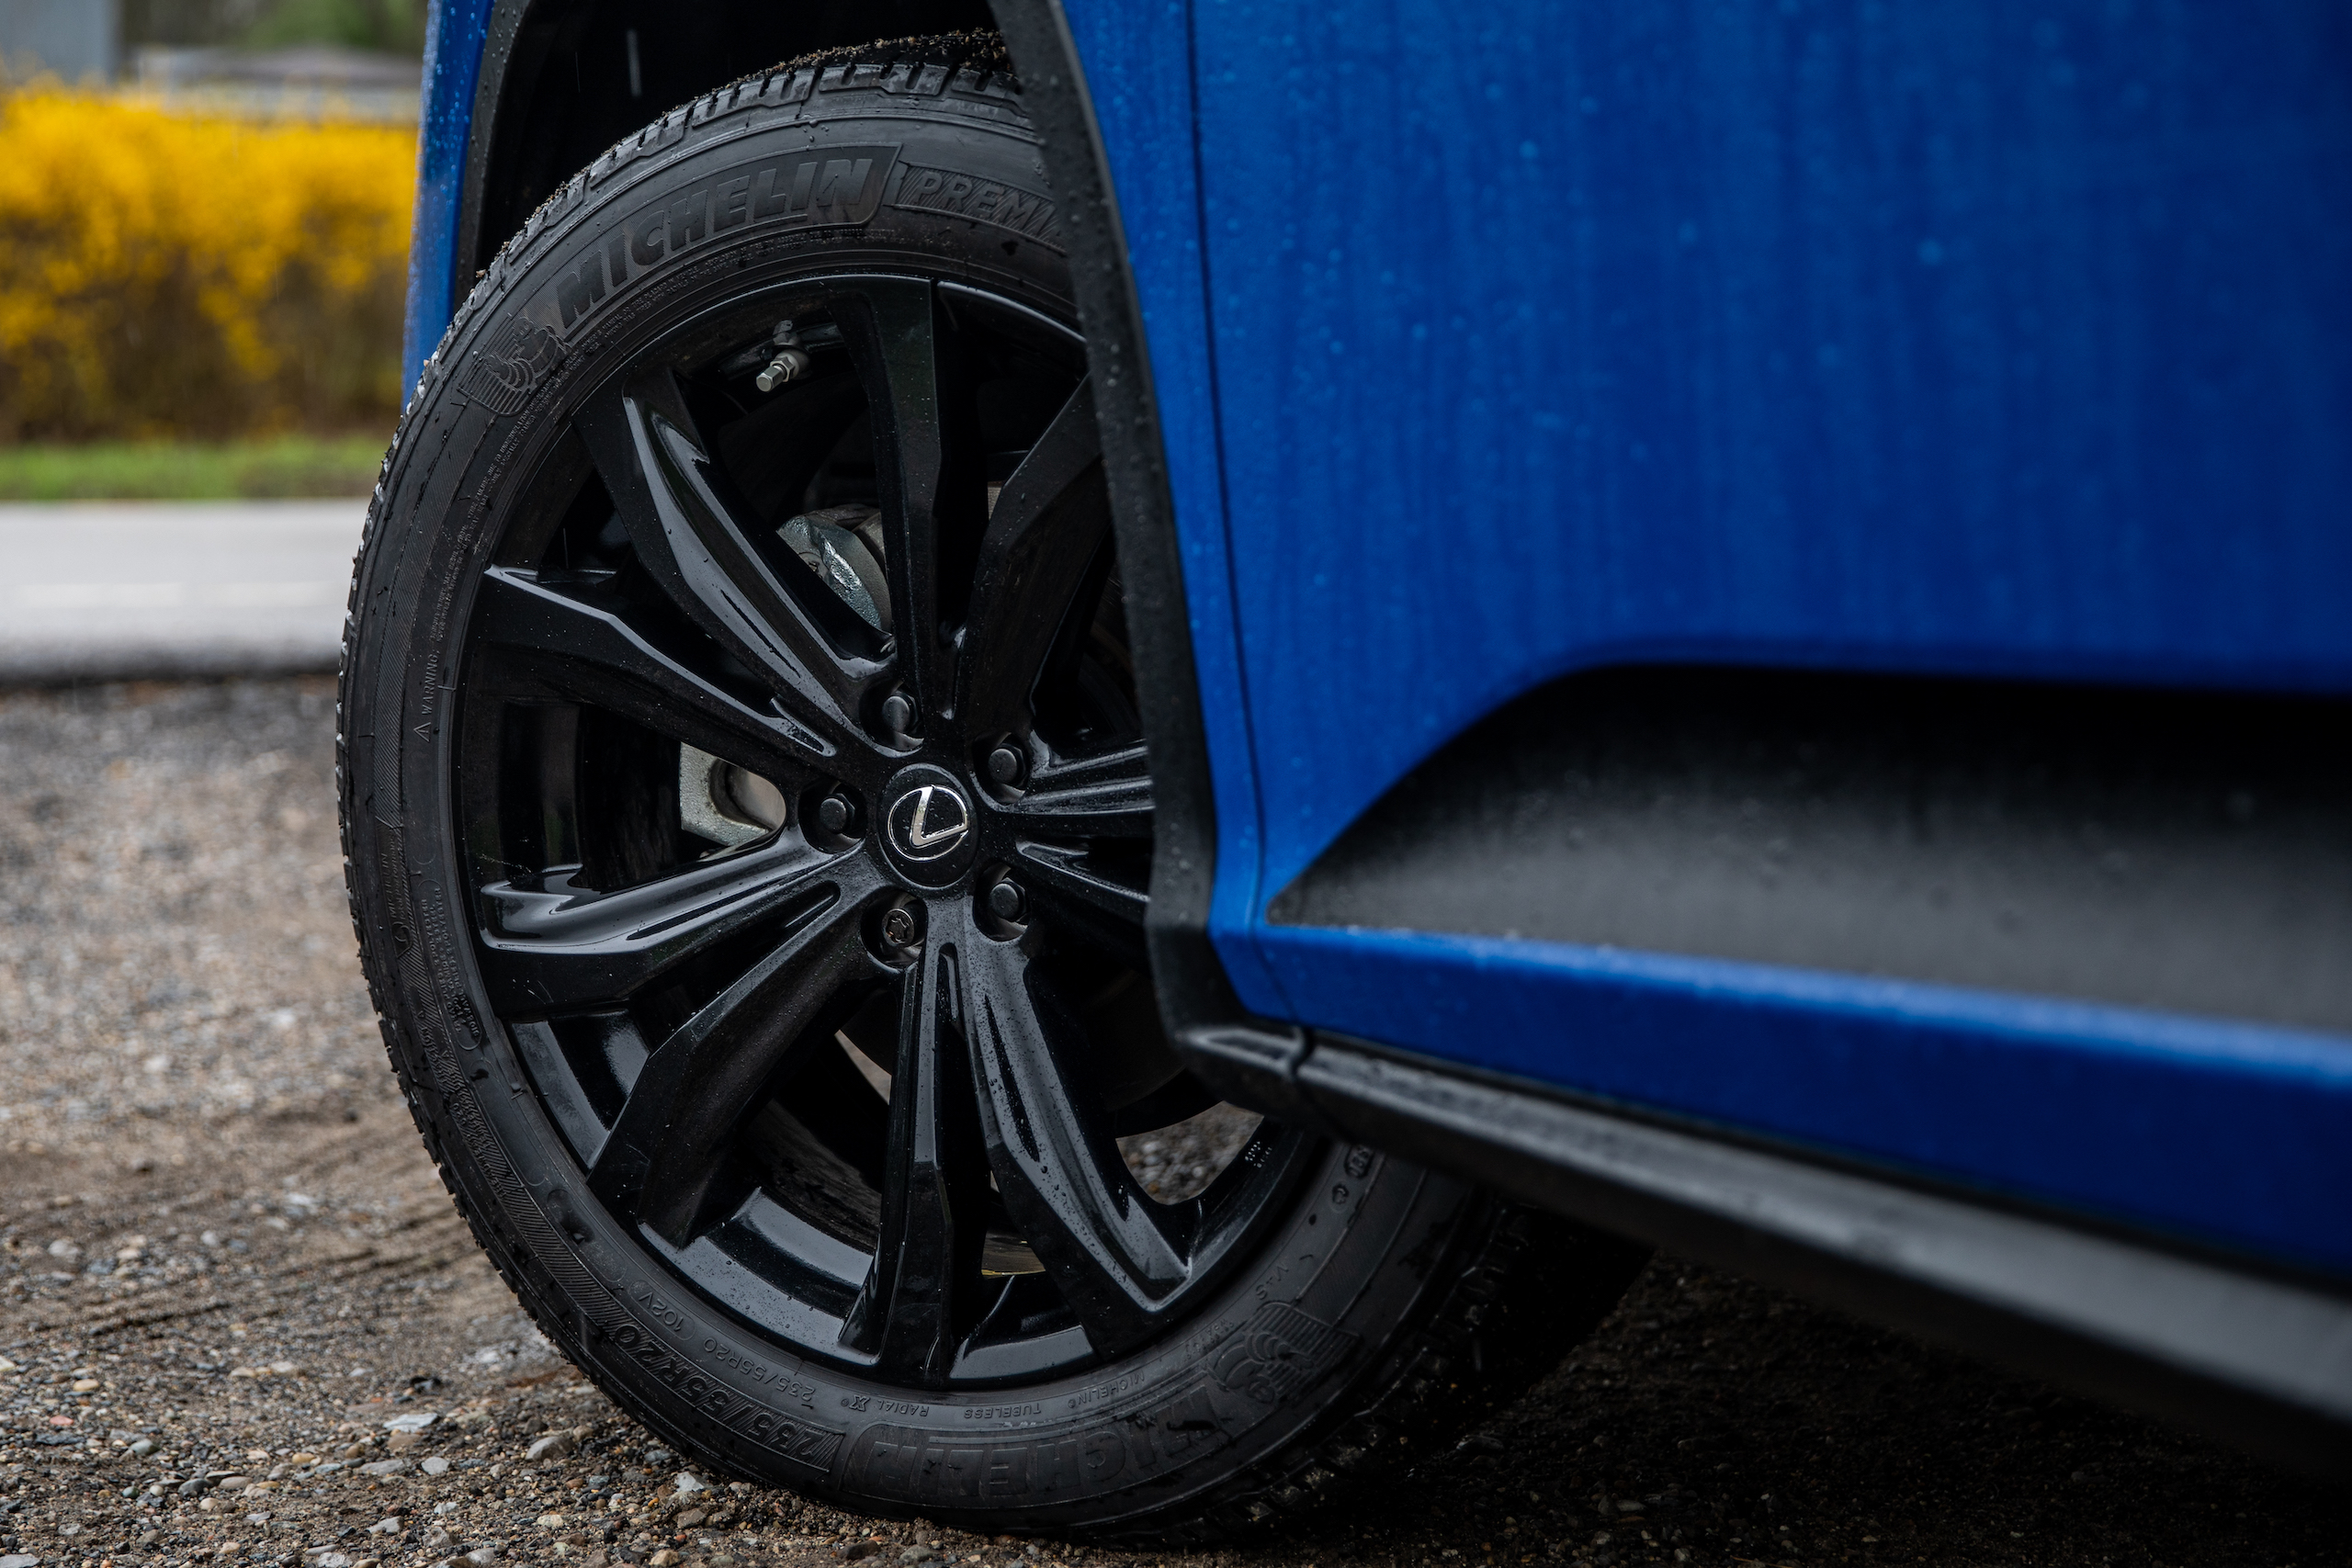 2021 Lexus RX450h wheel and tire